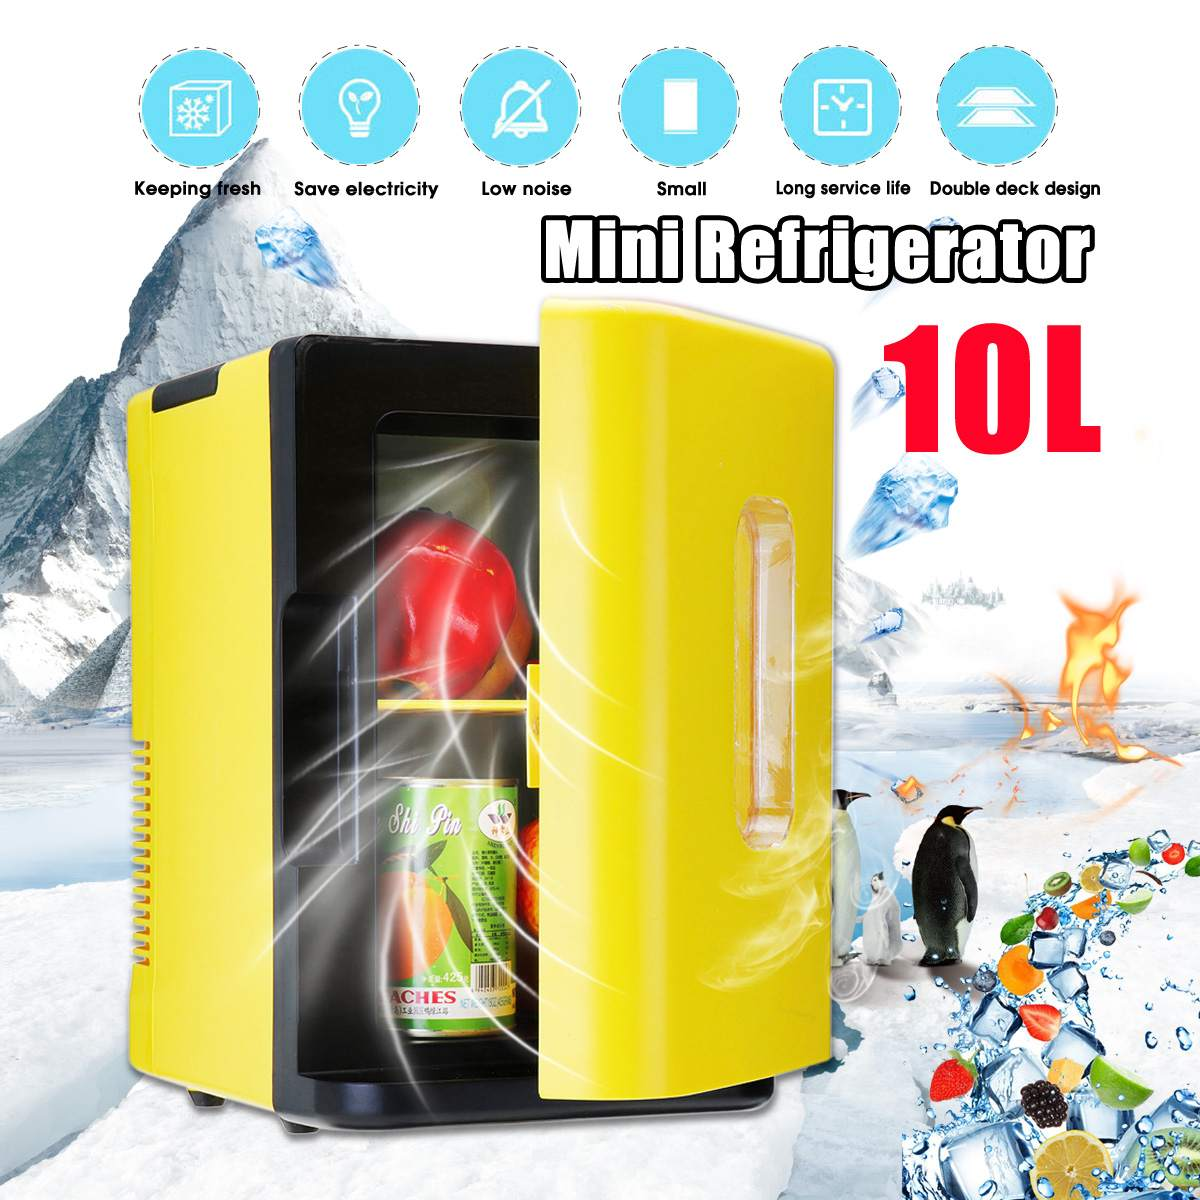 Electric Refrigerator 10L Small Refrigerator Multi-Purpose Refrigerator Home 220V